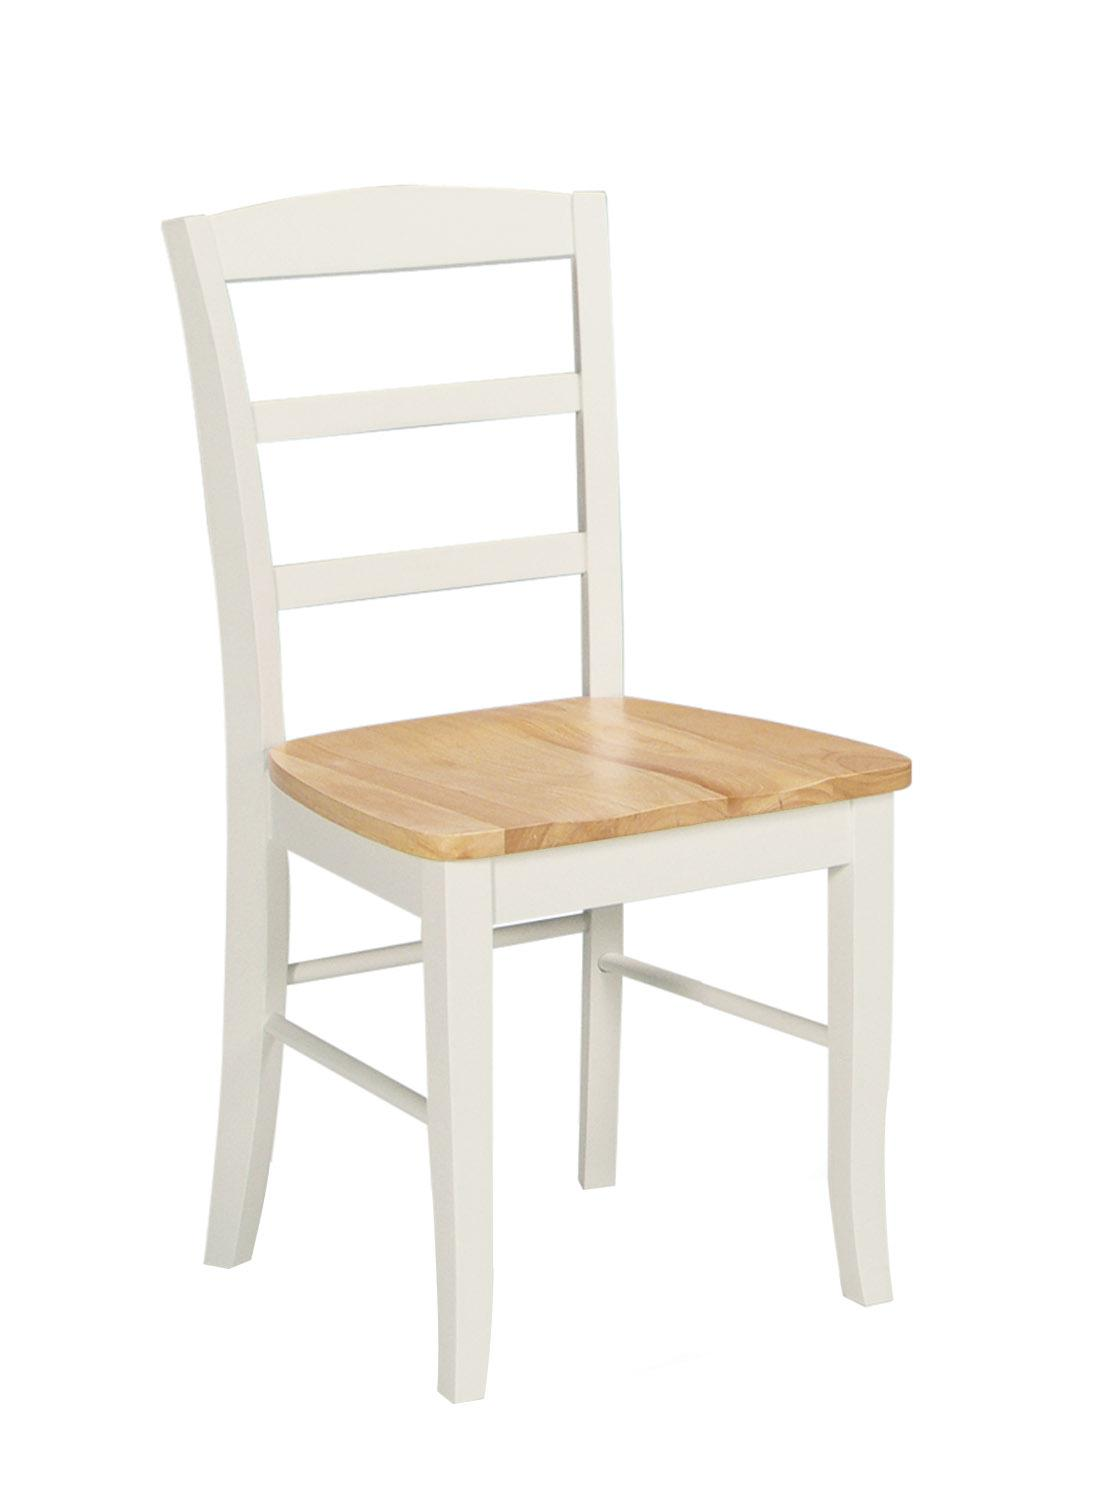 John Thomas Dining Essentials Ladderback Side Chair - Item Number: C02-2